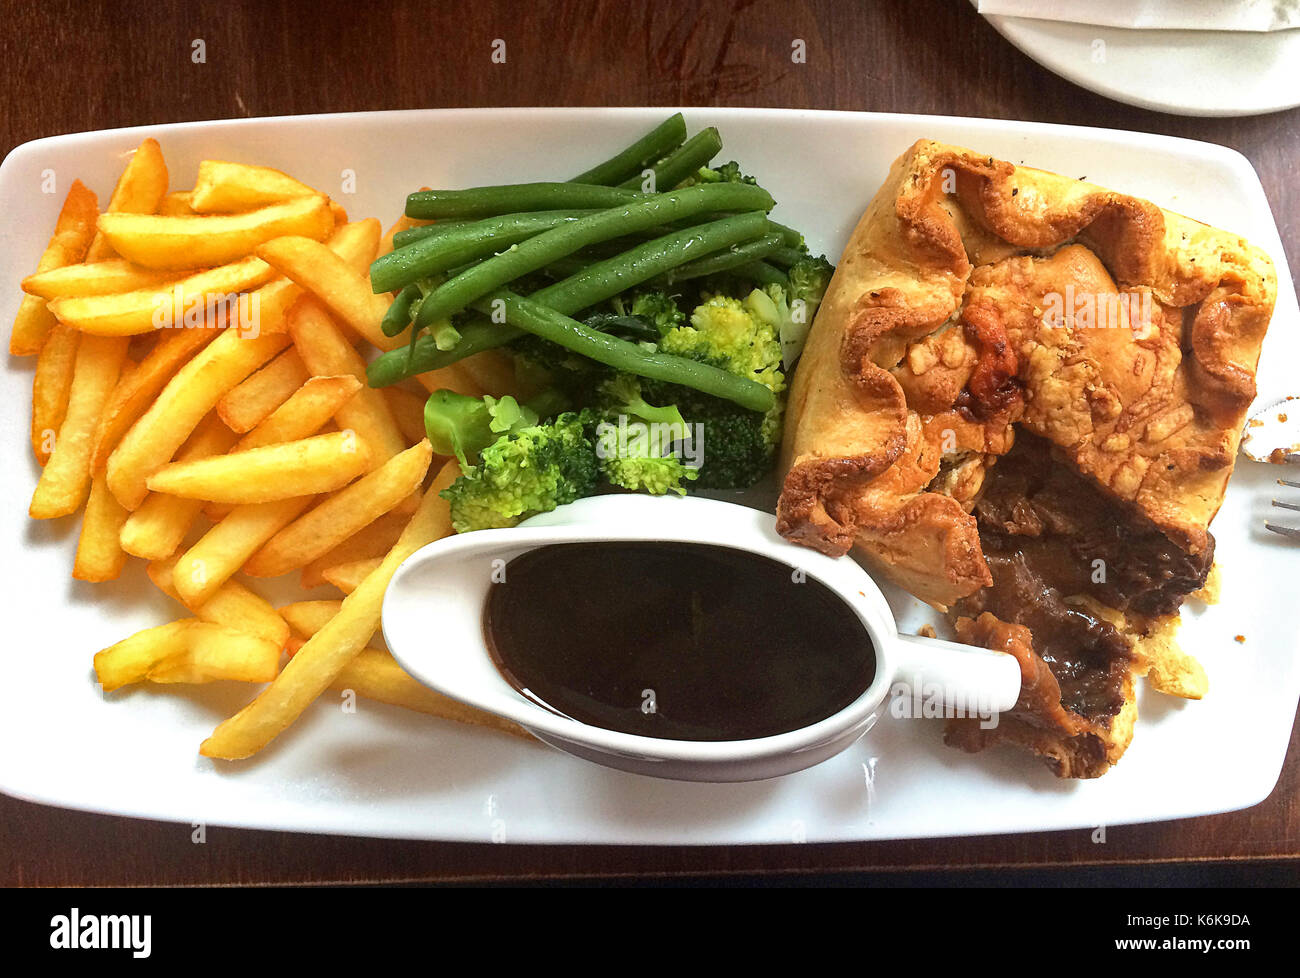 British lunch - Steak pie with chips, broccoli and gravy - Stock Image